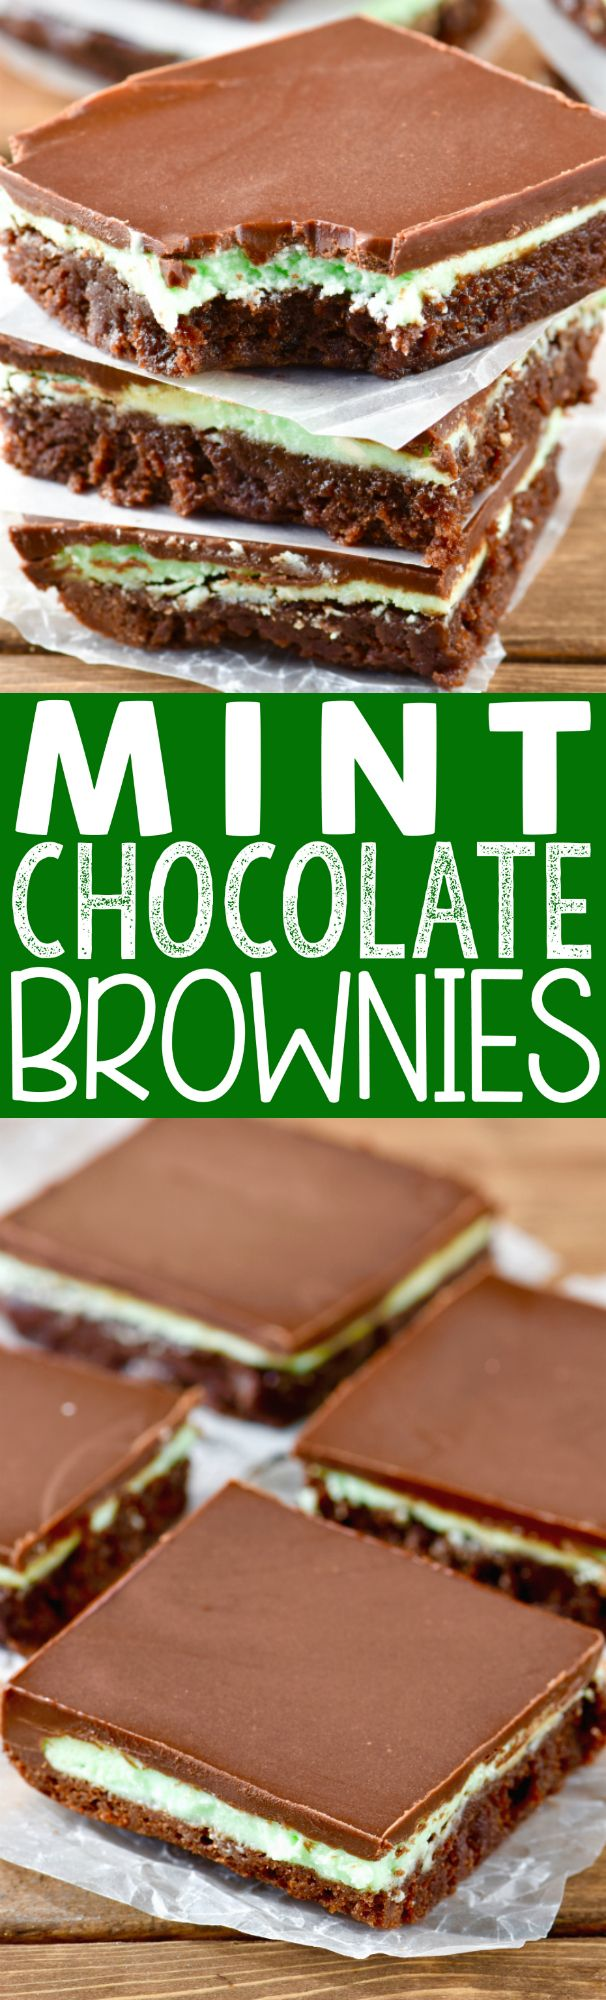 These Mint Chocolate Brownies are a family favorite! Everyone always asks for the recipe for these amazing brownies!